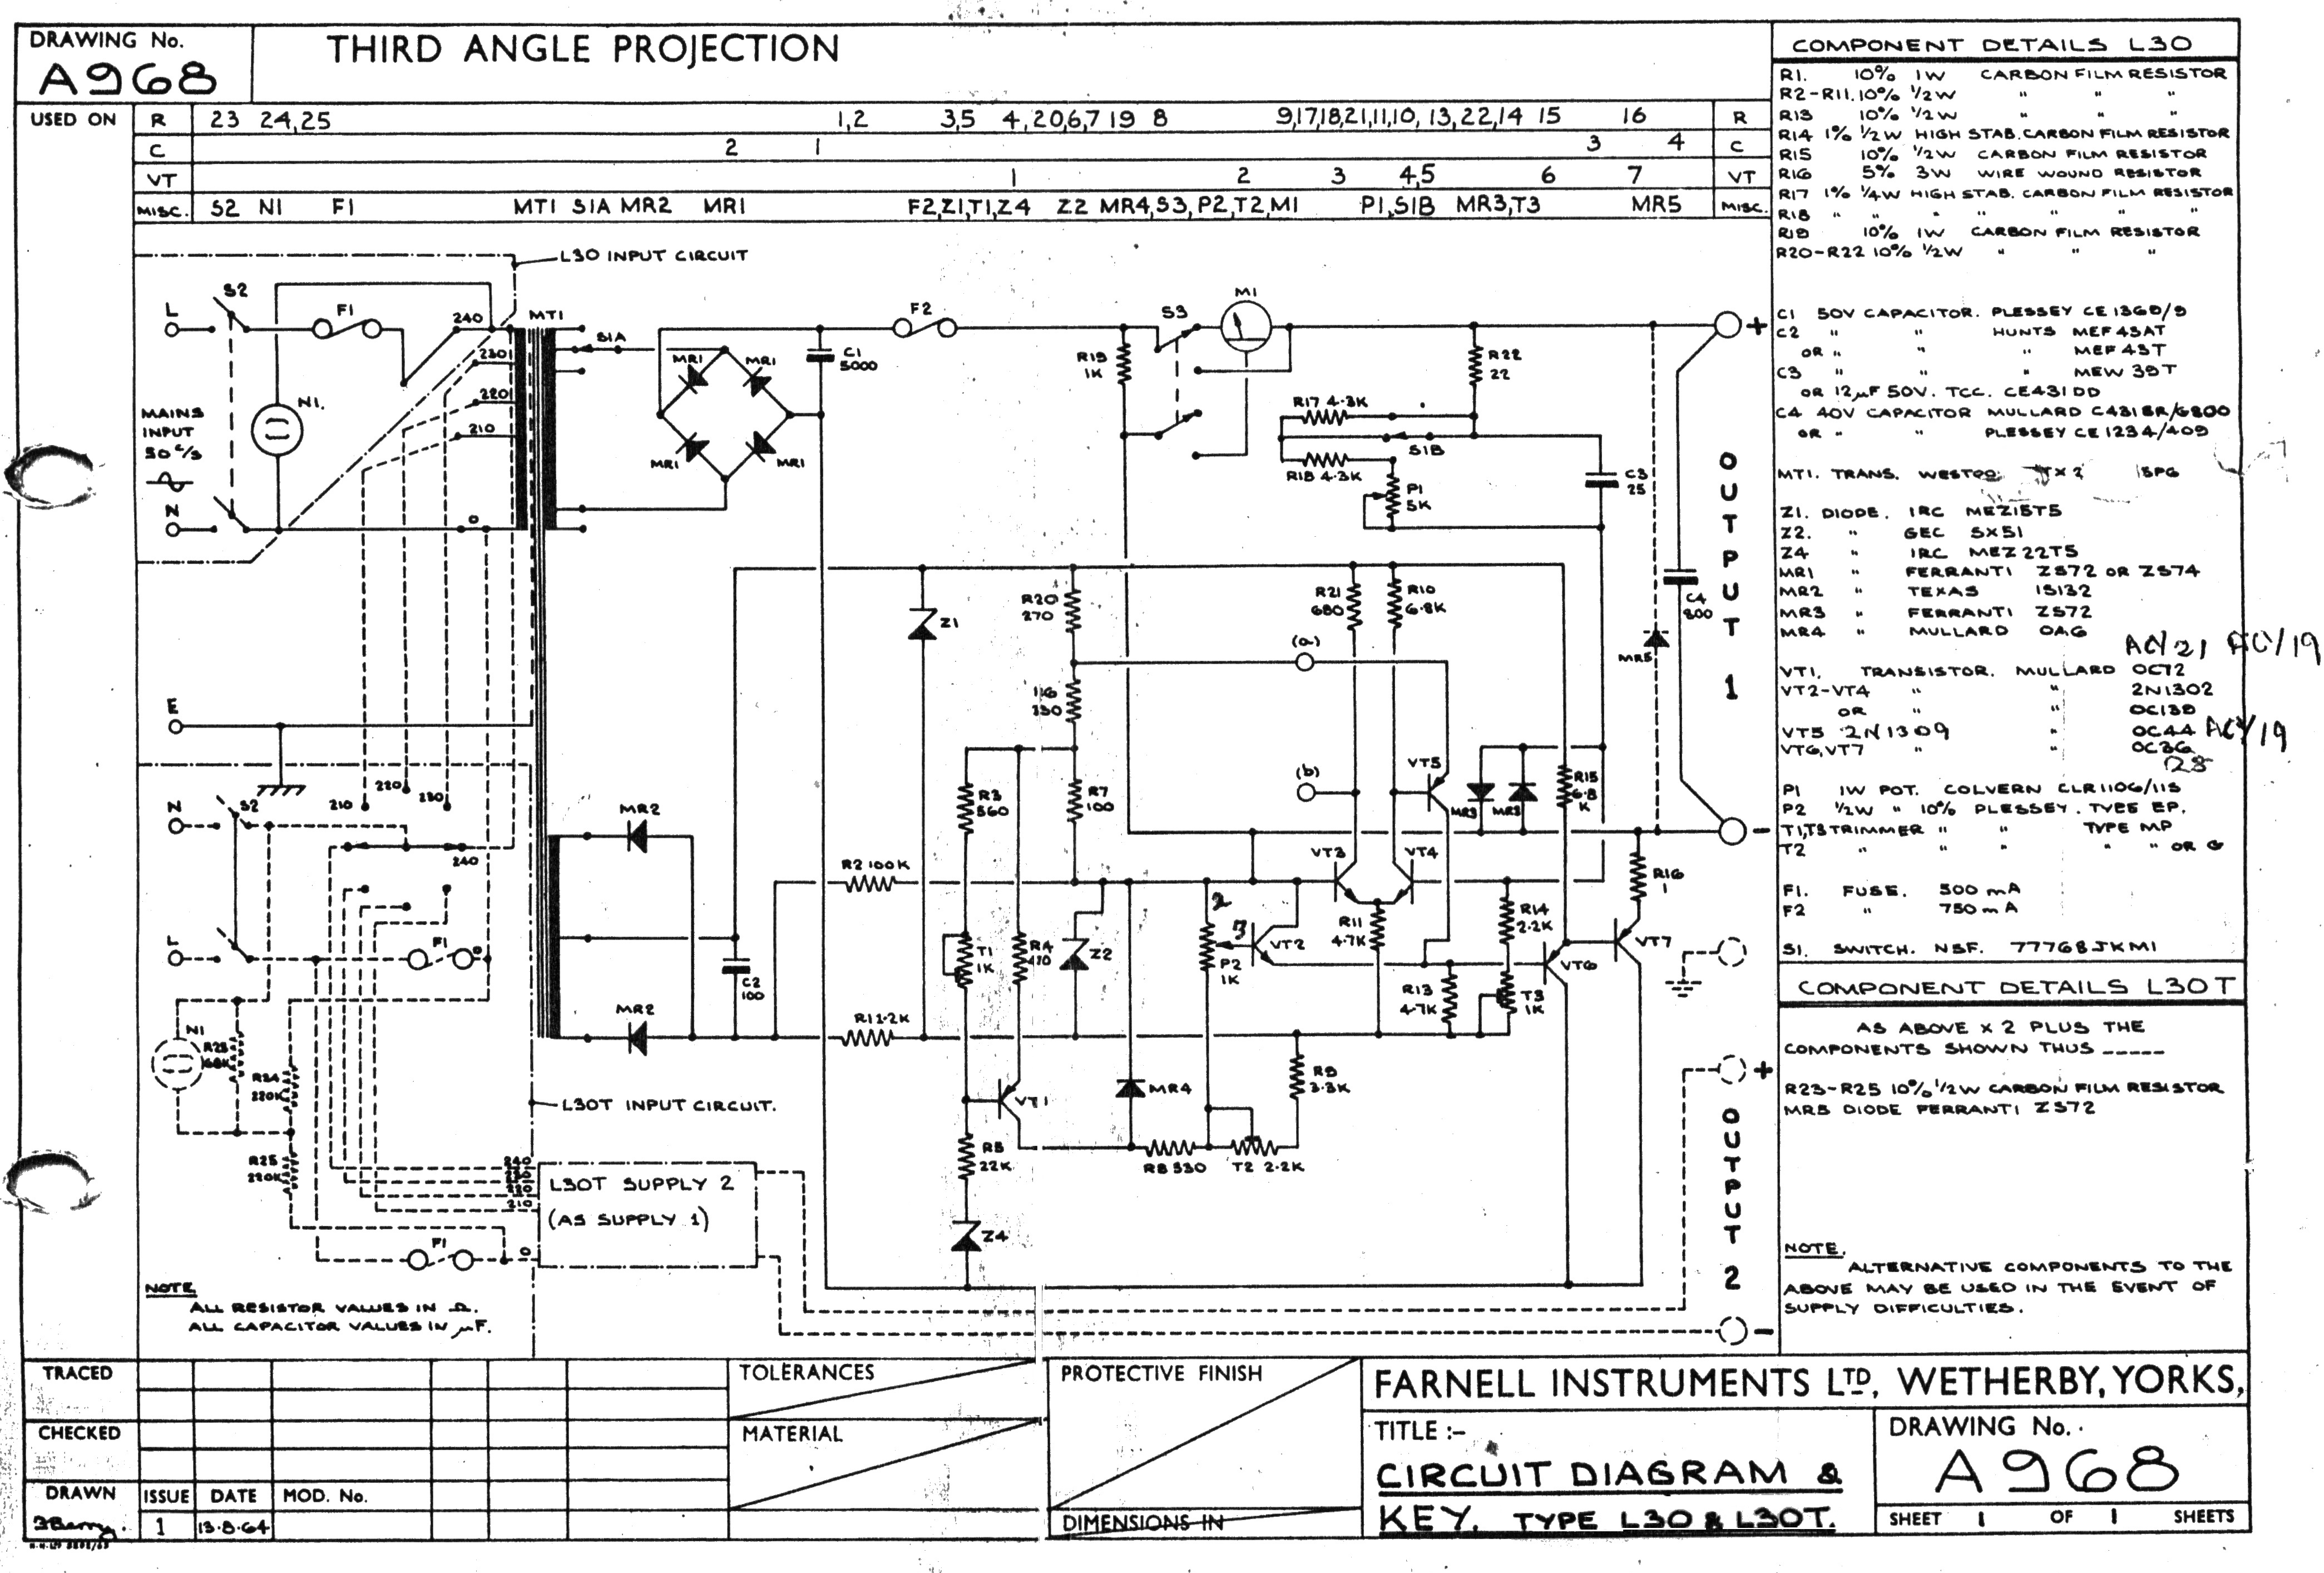 Farnell L30 Stabilised Voltage Supply 1963 Germanium Circuit Diagram Currents In The Darlington Pair A Of Oc36 Power Devices Is Used For Common Collector Output Maintained By Control On Single Sided Pcb Operating From